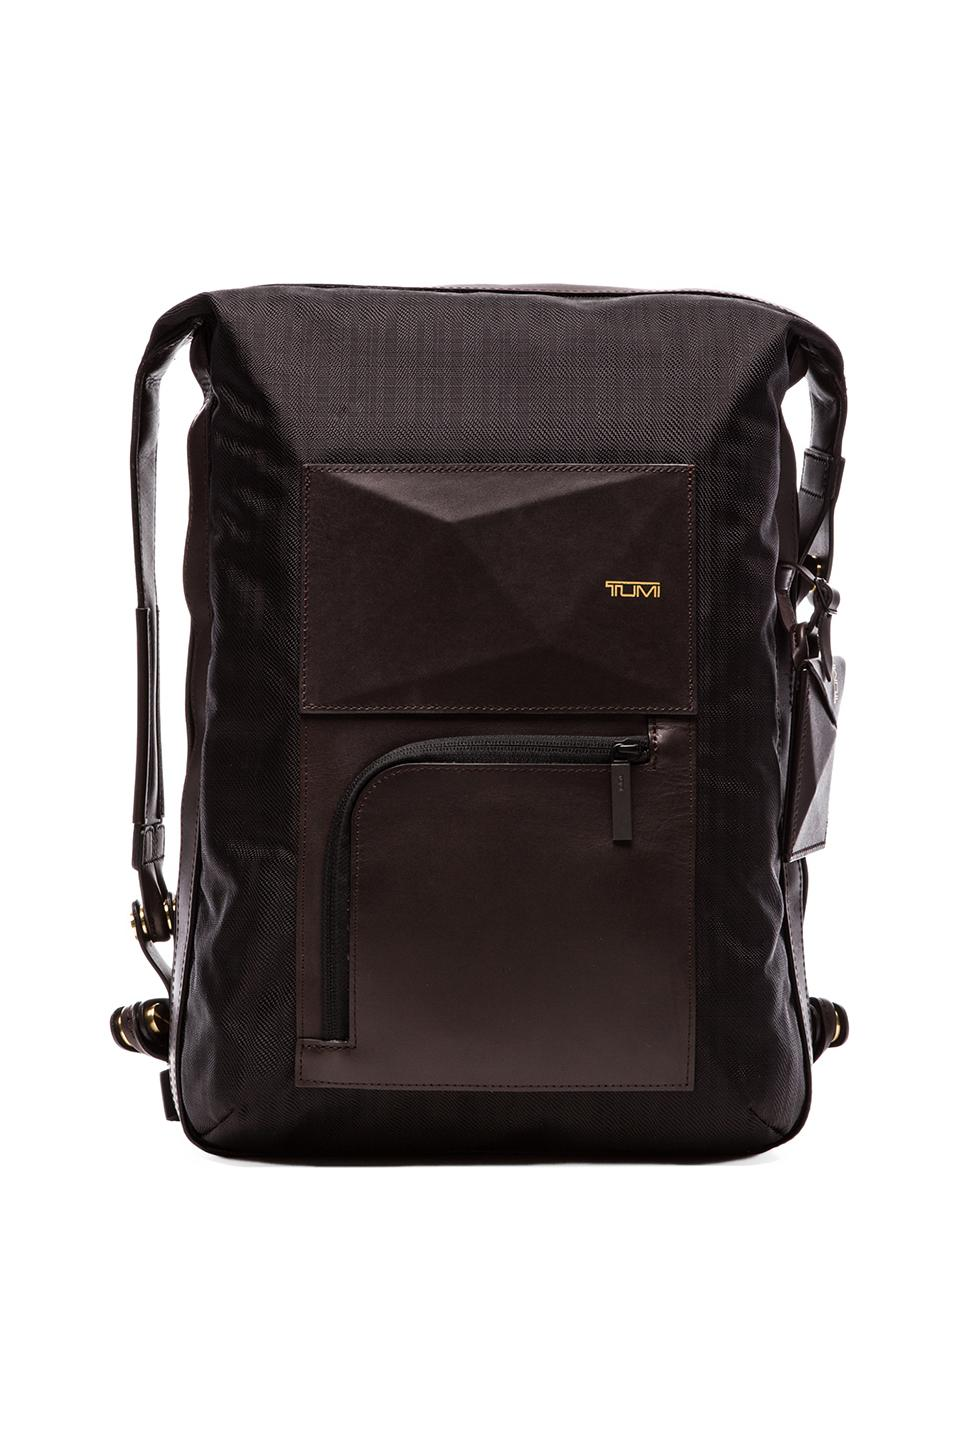 Tumi Dror Backpack in Onyx